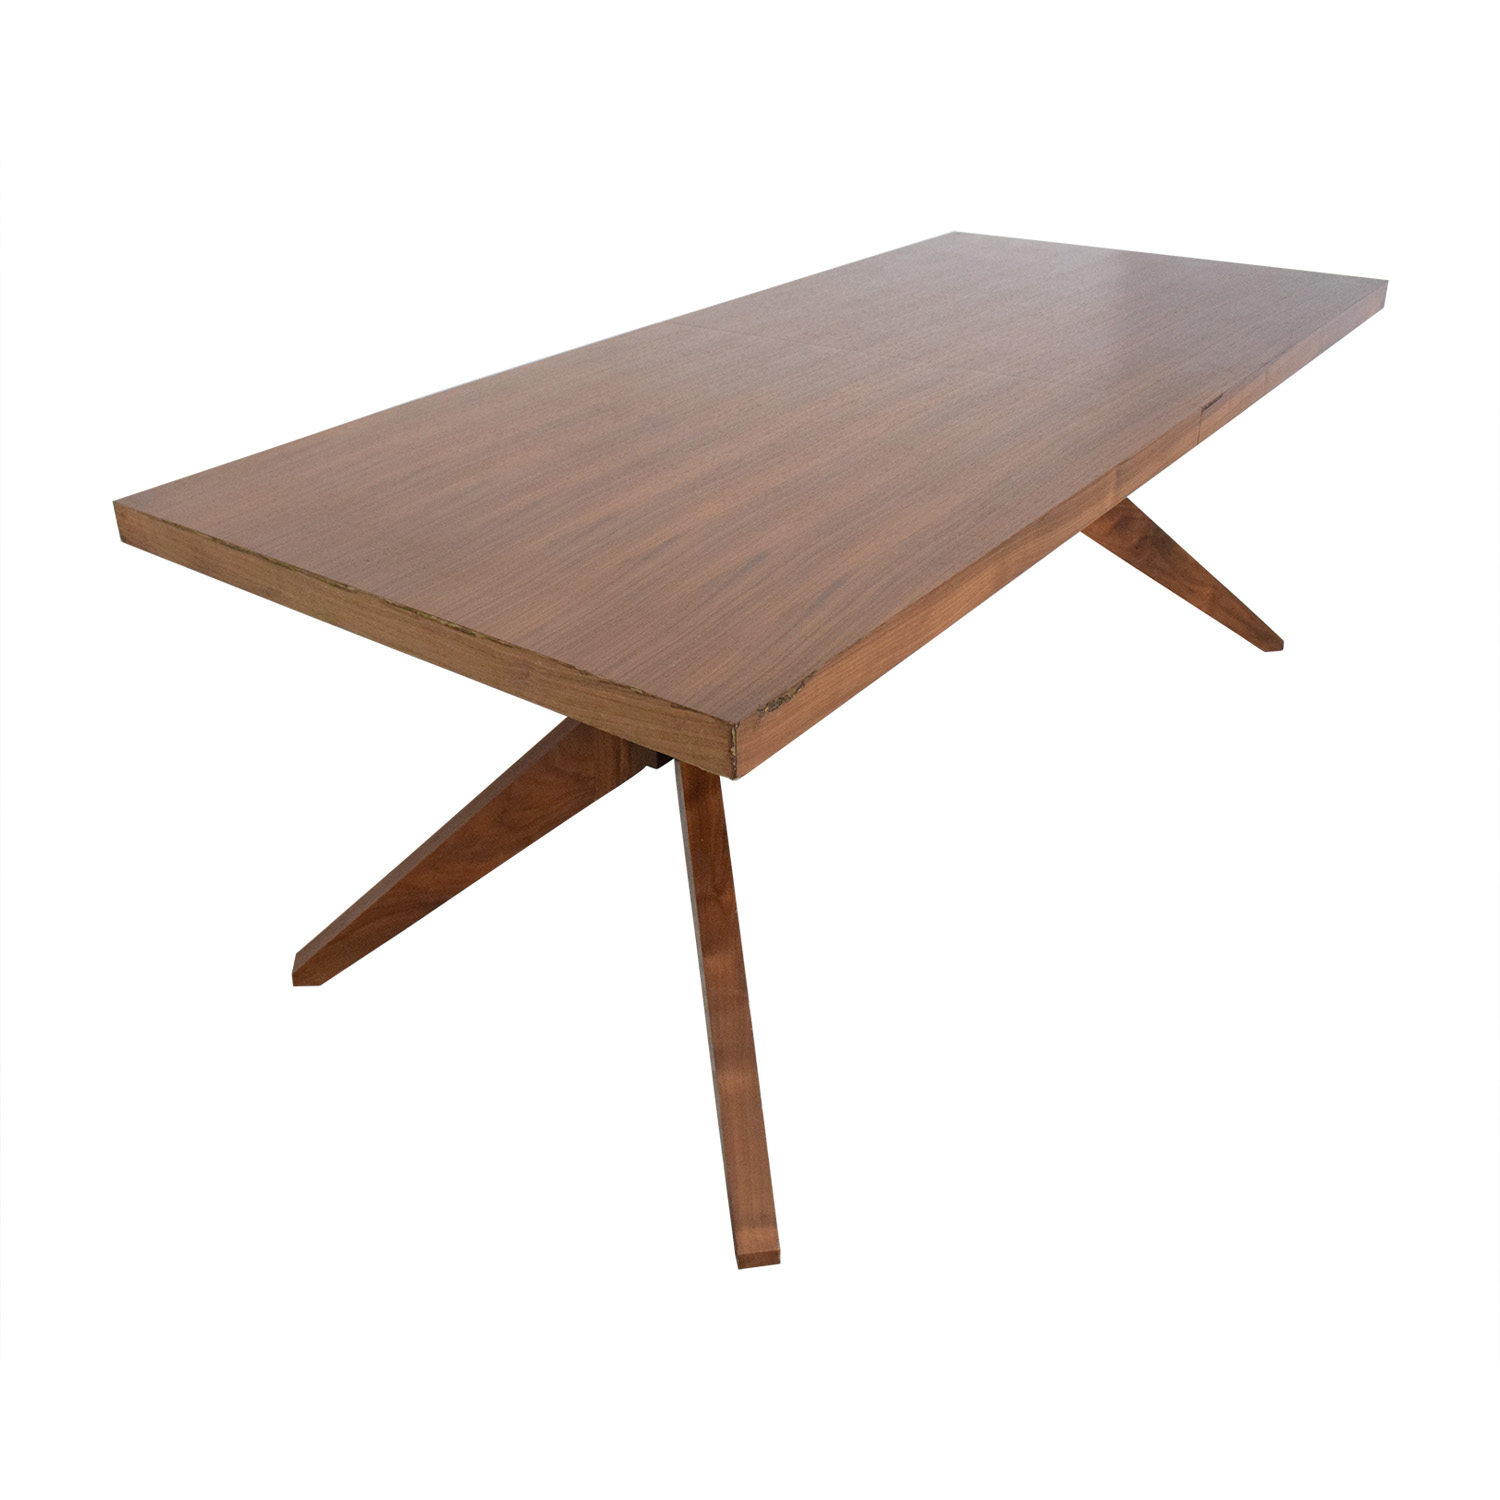 Matthew Hilton for Case Cross Extension Dining Table / Dinner Tables